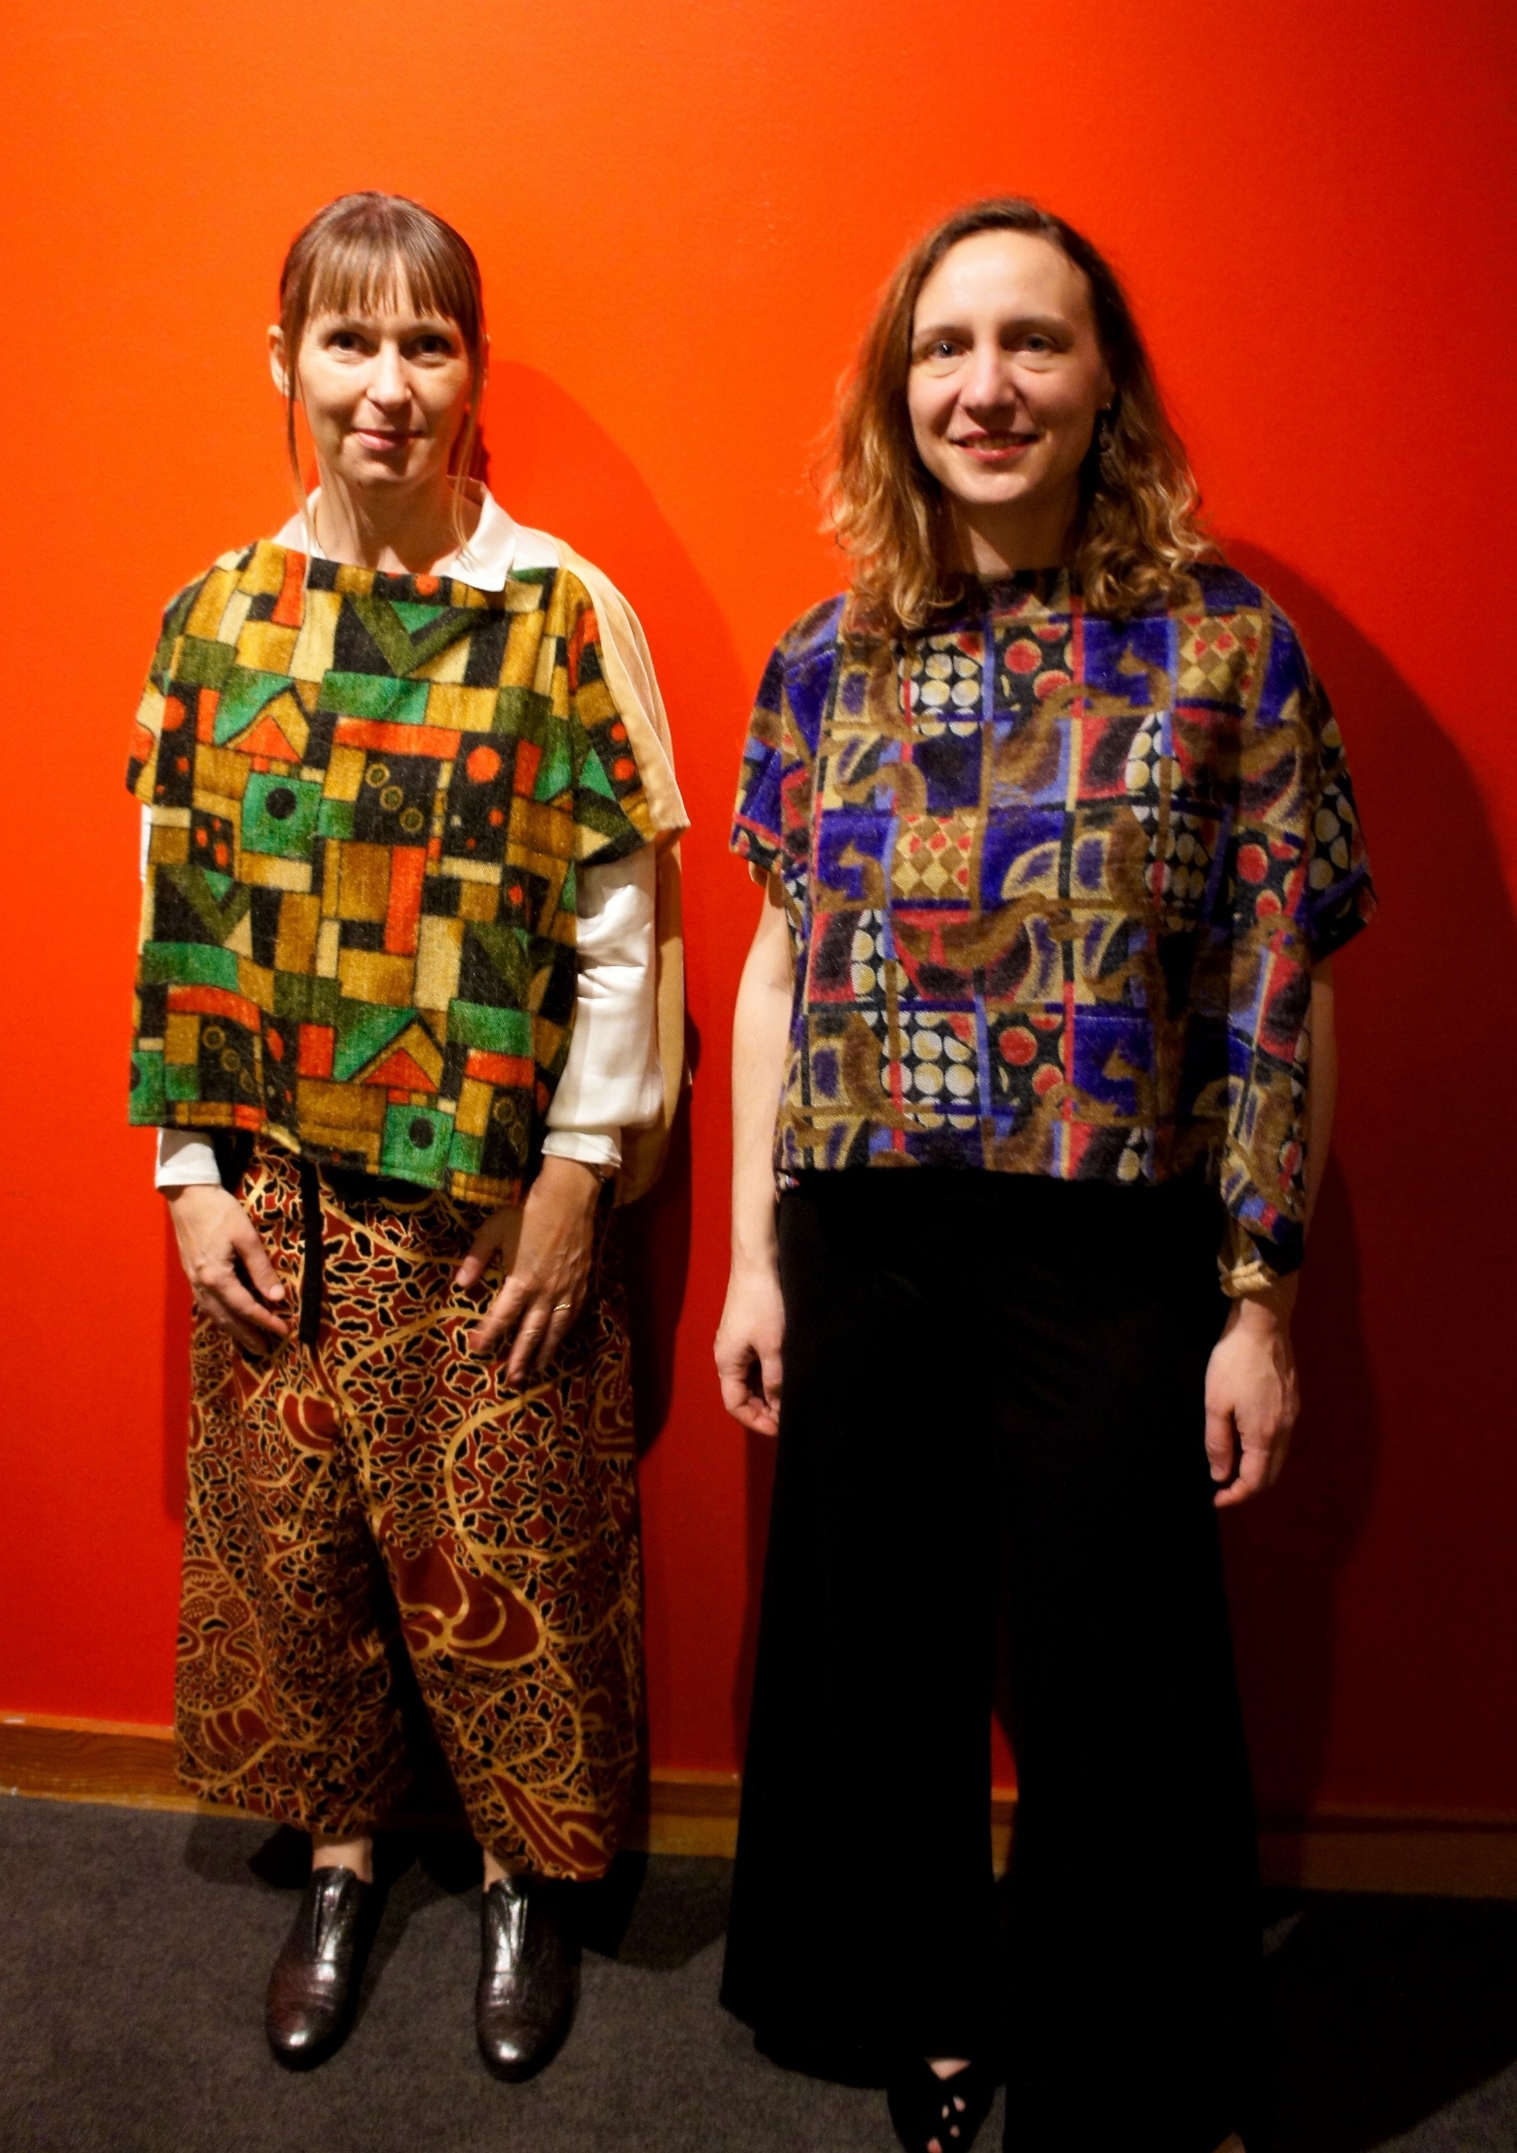 silvia tarozzi & deborah walker in tsiimade block cloth shirts at their recent REDCAT show in LA.